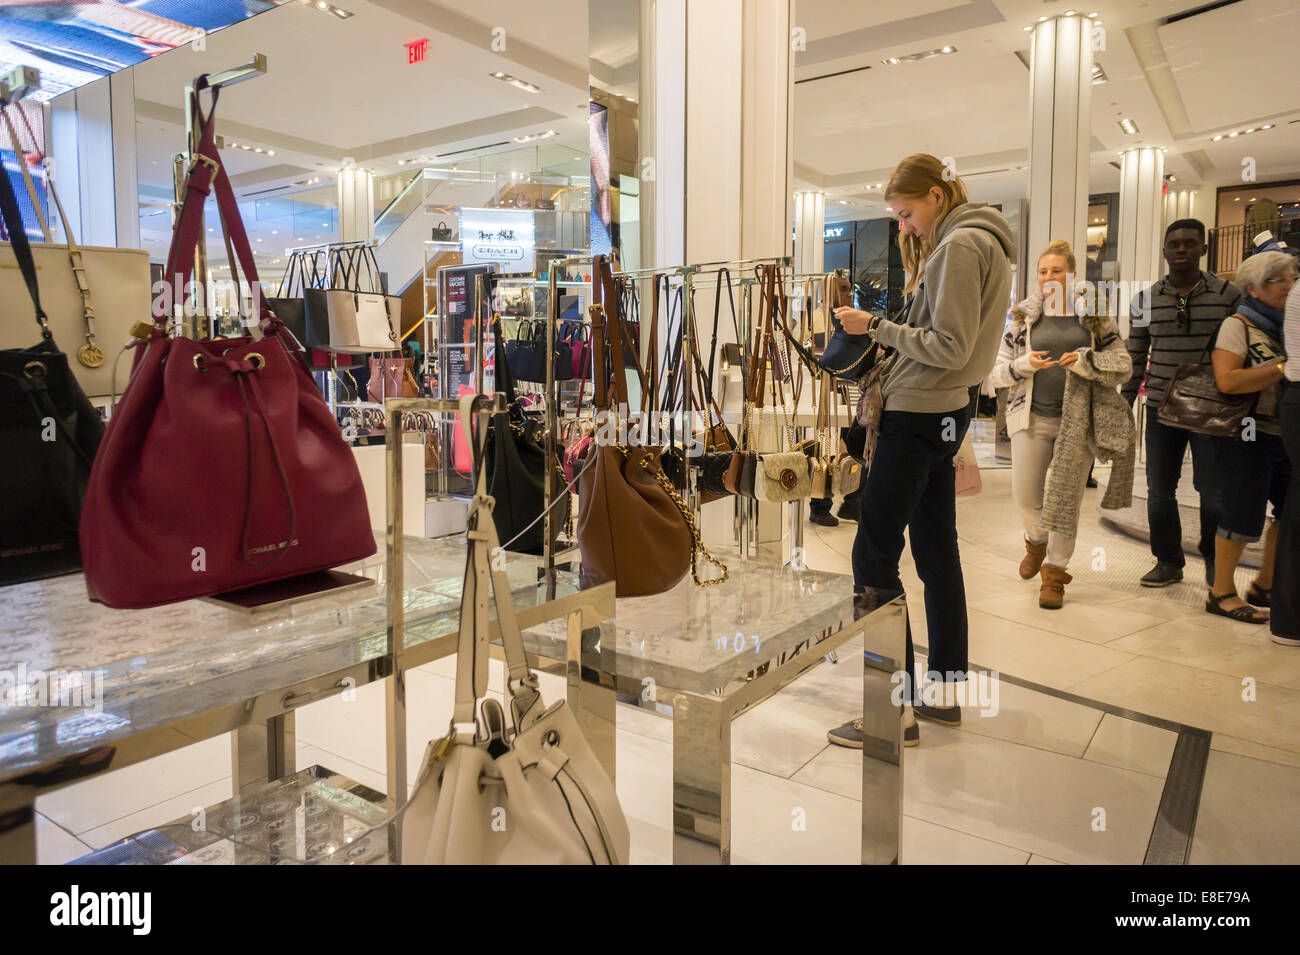 d1f3ae3d46bf6c The Michael Kors boutique within the Macy's Herald Square department store  in New York - Stock